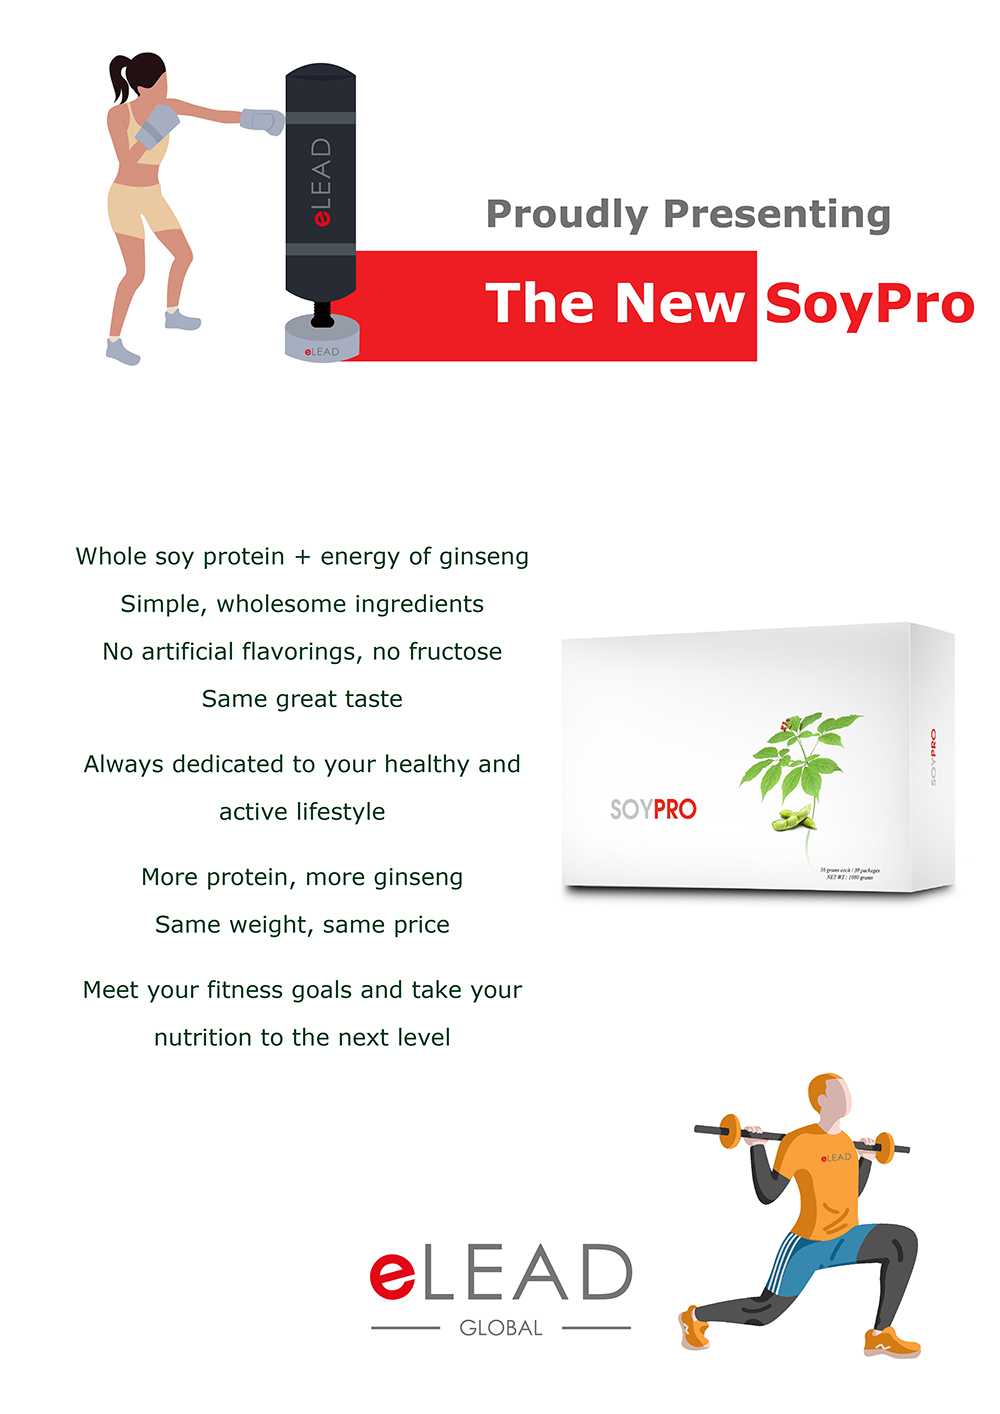 The New SoyPro